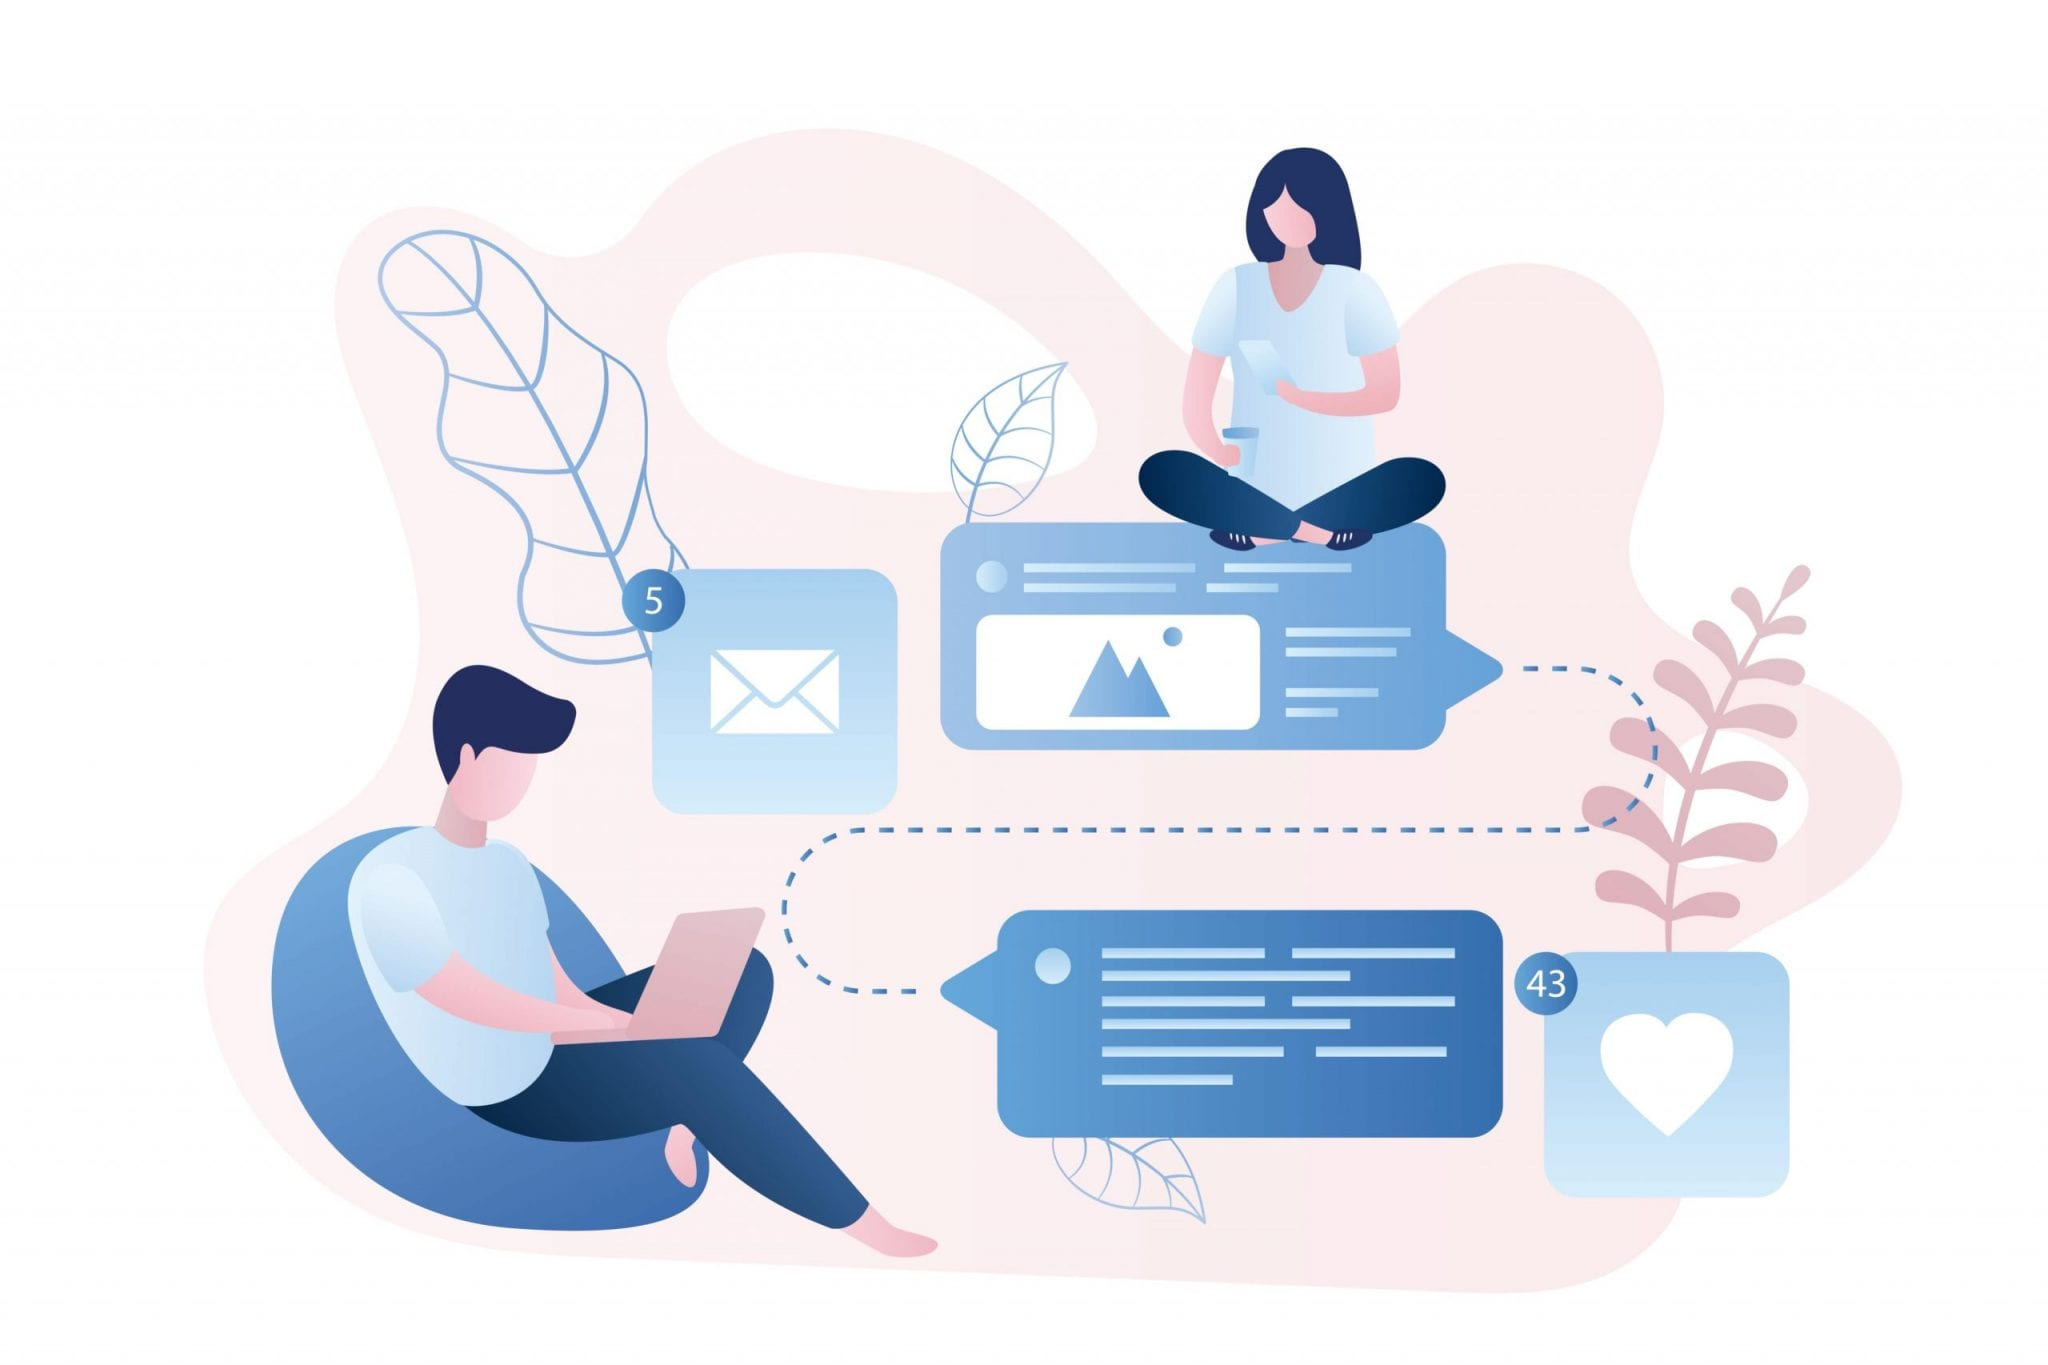 People With Smart Gadgets, Online Talking, and Chatting, Social Network, Trendy Style Vector Illustration.